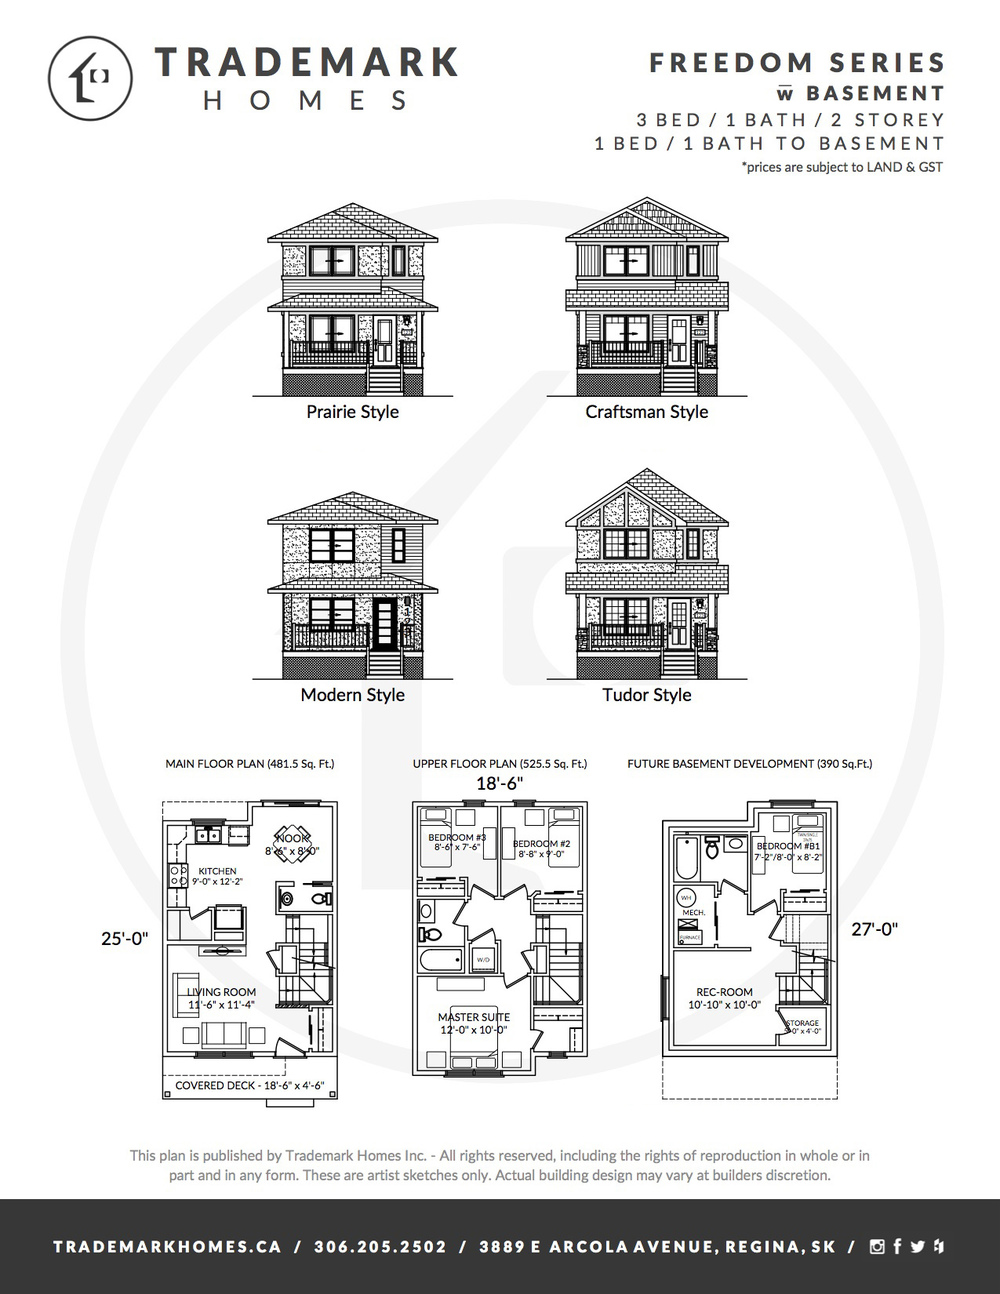 Freedom Series - 2 Storey - with basement - Floorplan - Regina Home Builder